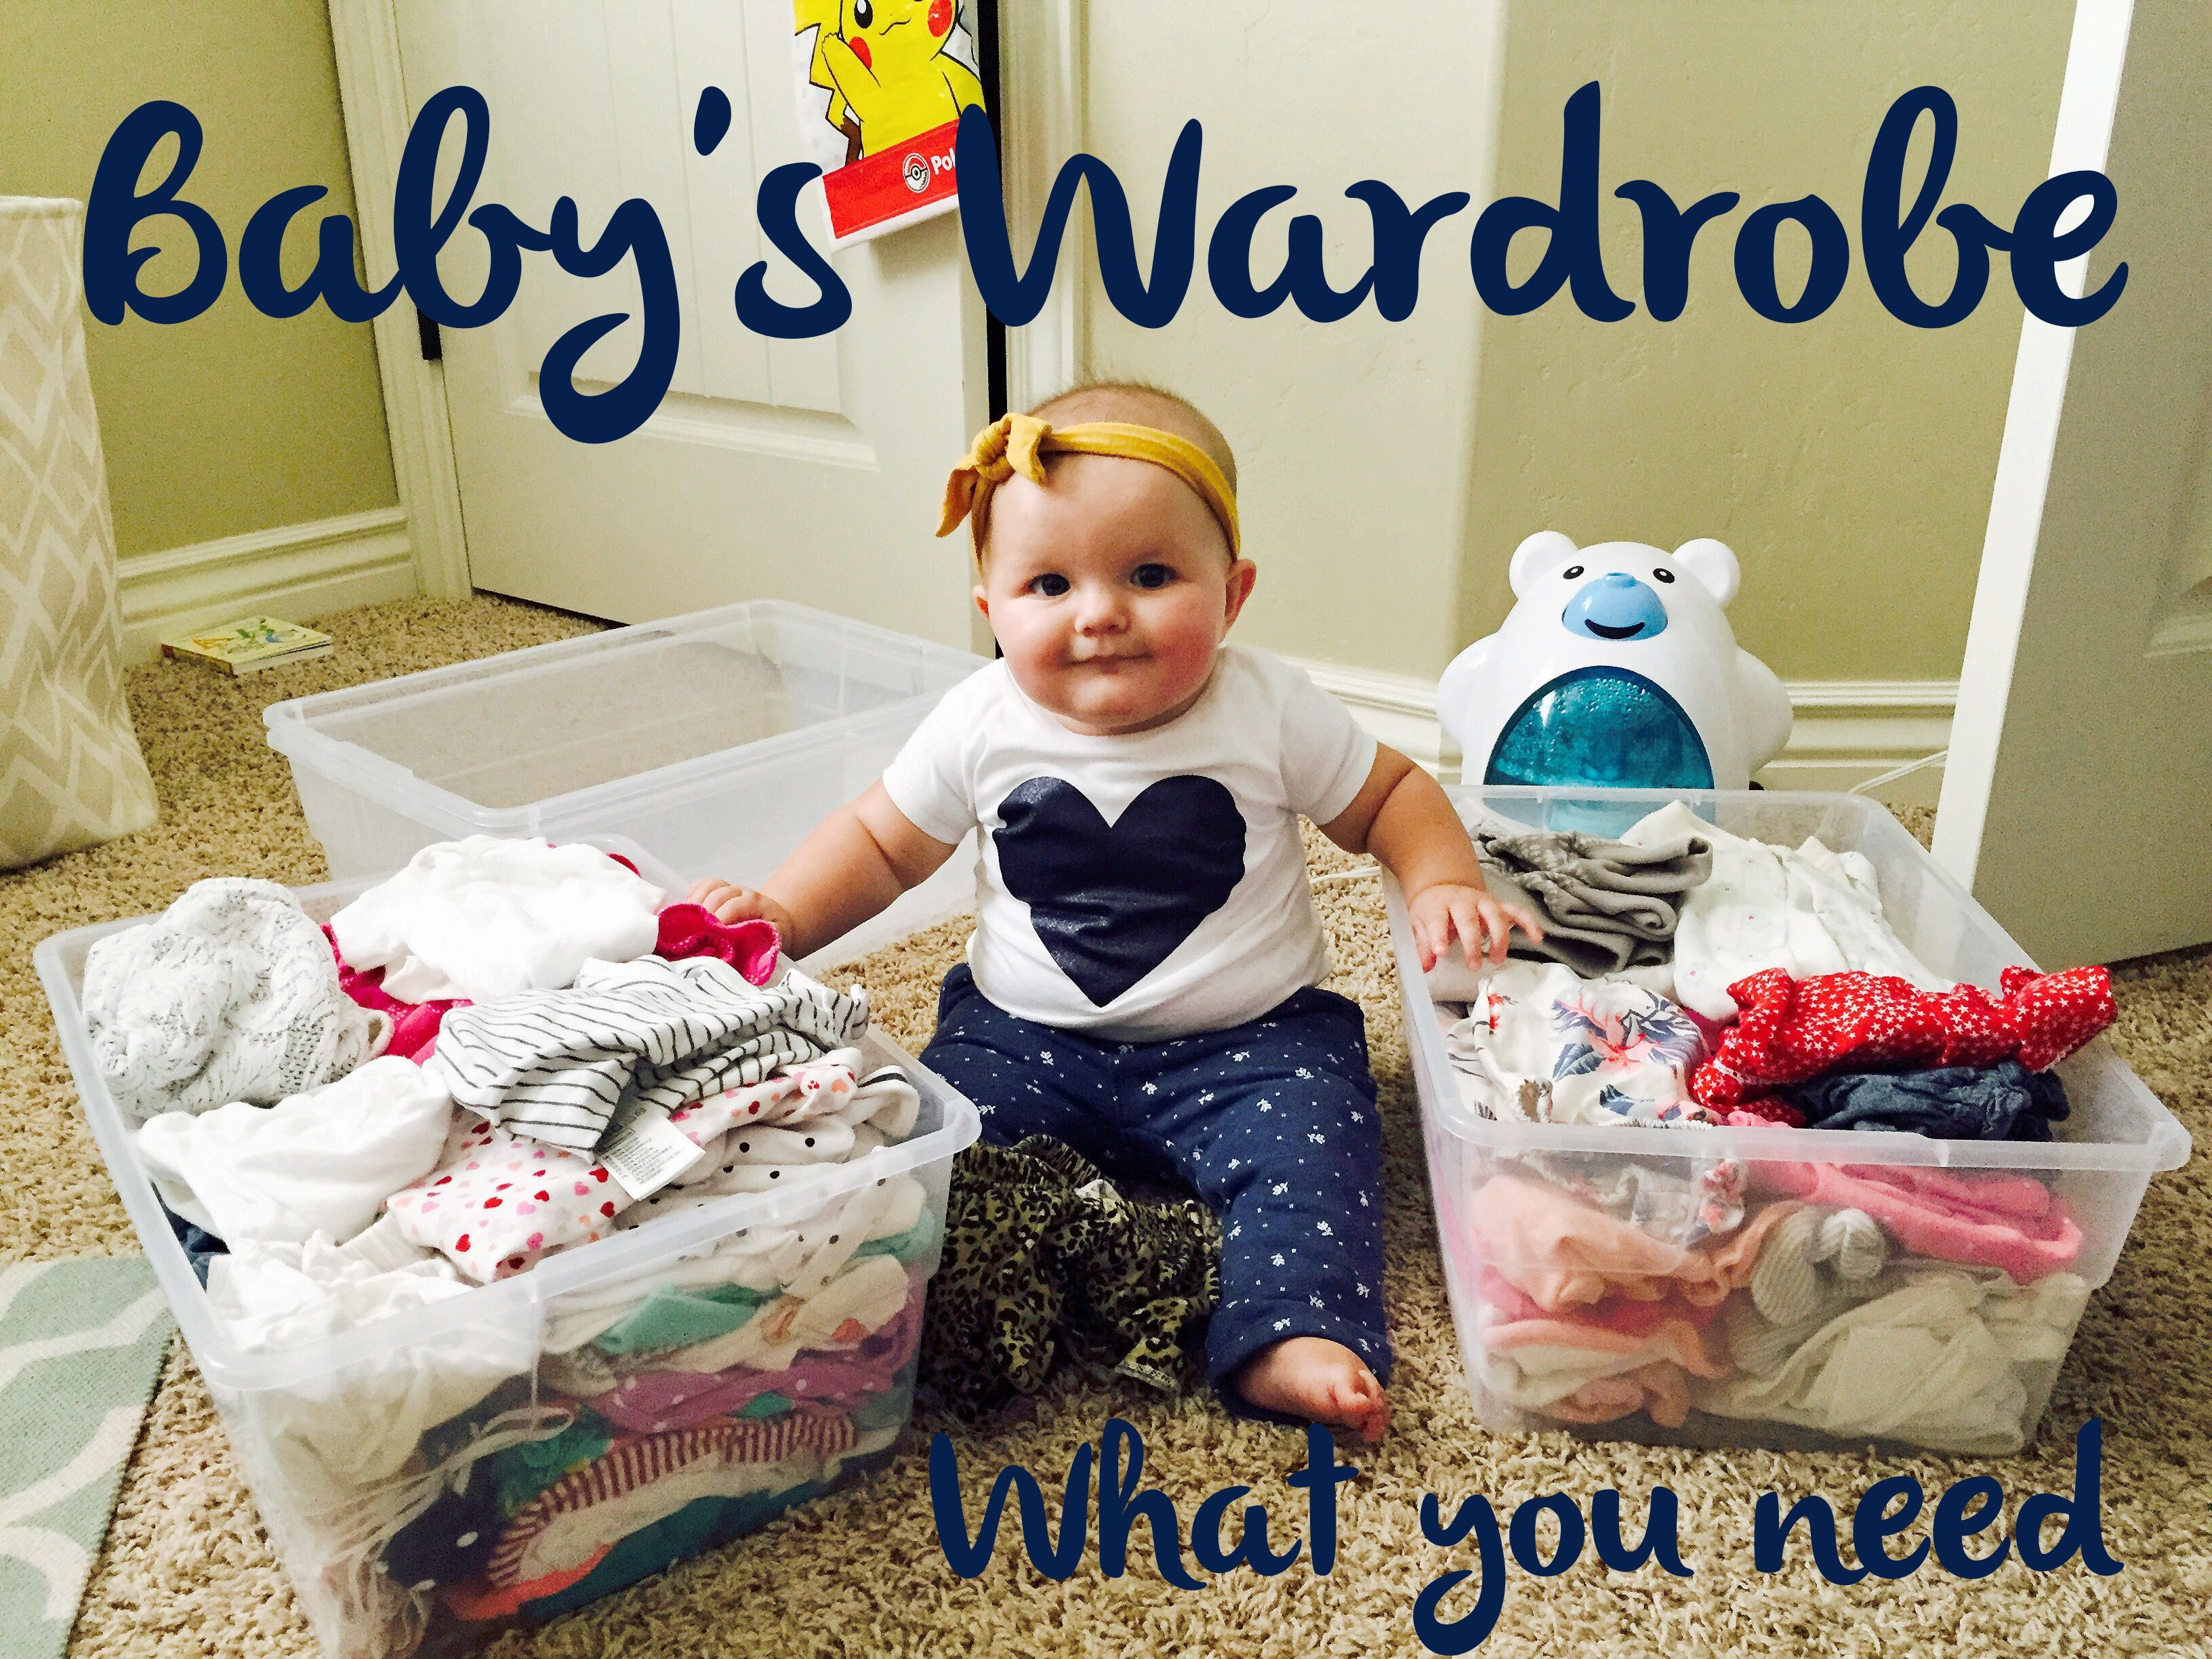 Danica shares the knowledge on what I'll actually need in my baby's wardrobe